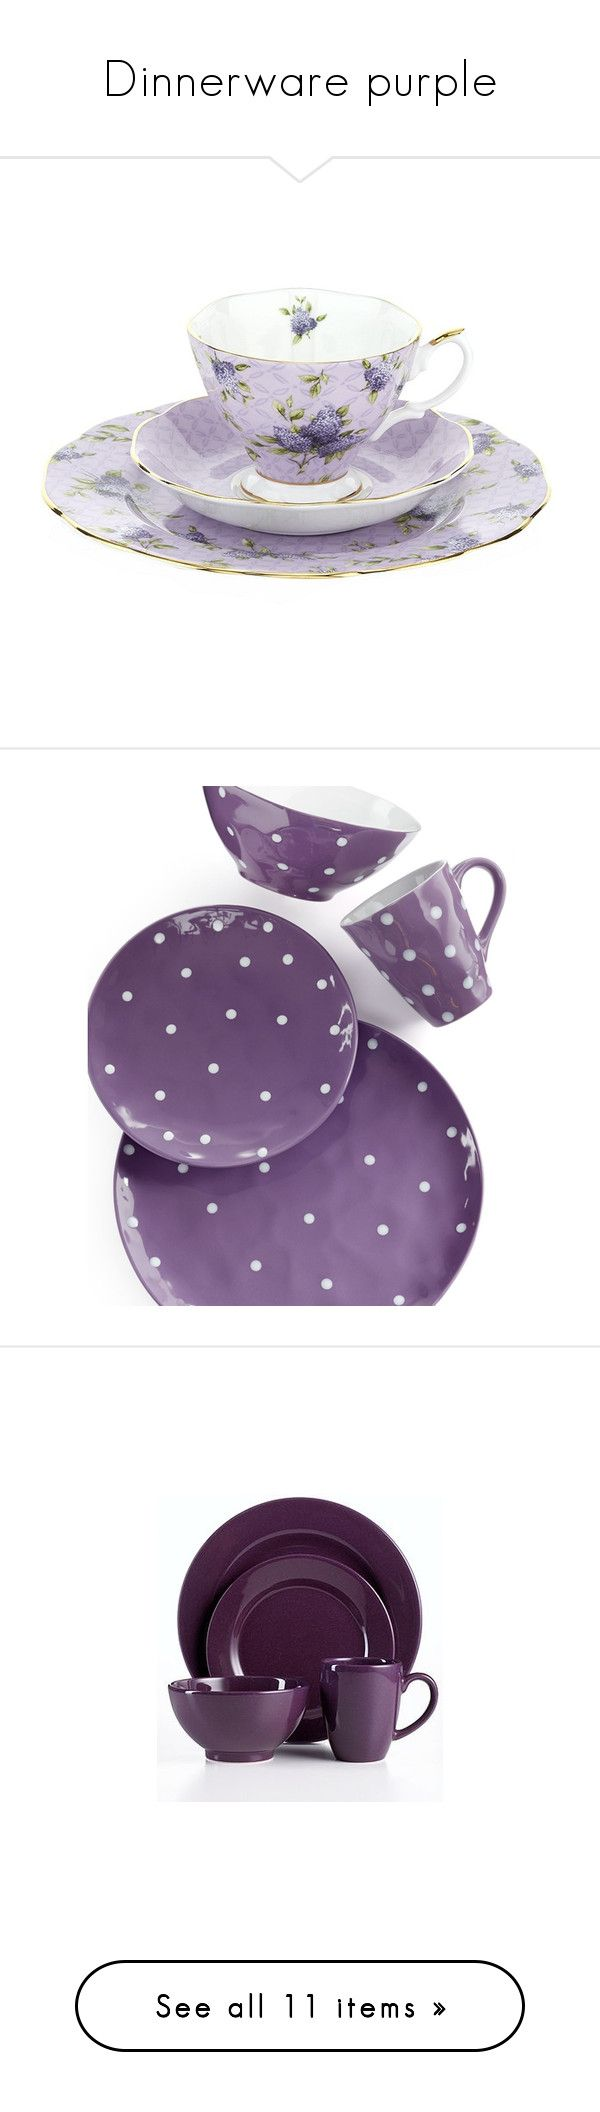 """Dinnerware purple"" by elli951 ❤ liked on Polyvore featuring home, kitchen & dining, dinnerware, floral pattern dinnerware, royal albert, floral dinnerware, patterned dinnerware, gold trim dinnerware, purple and set of 4 dinner plates"